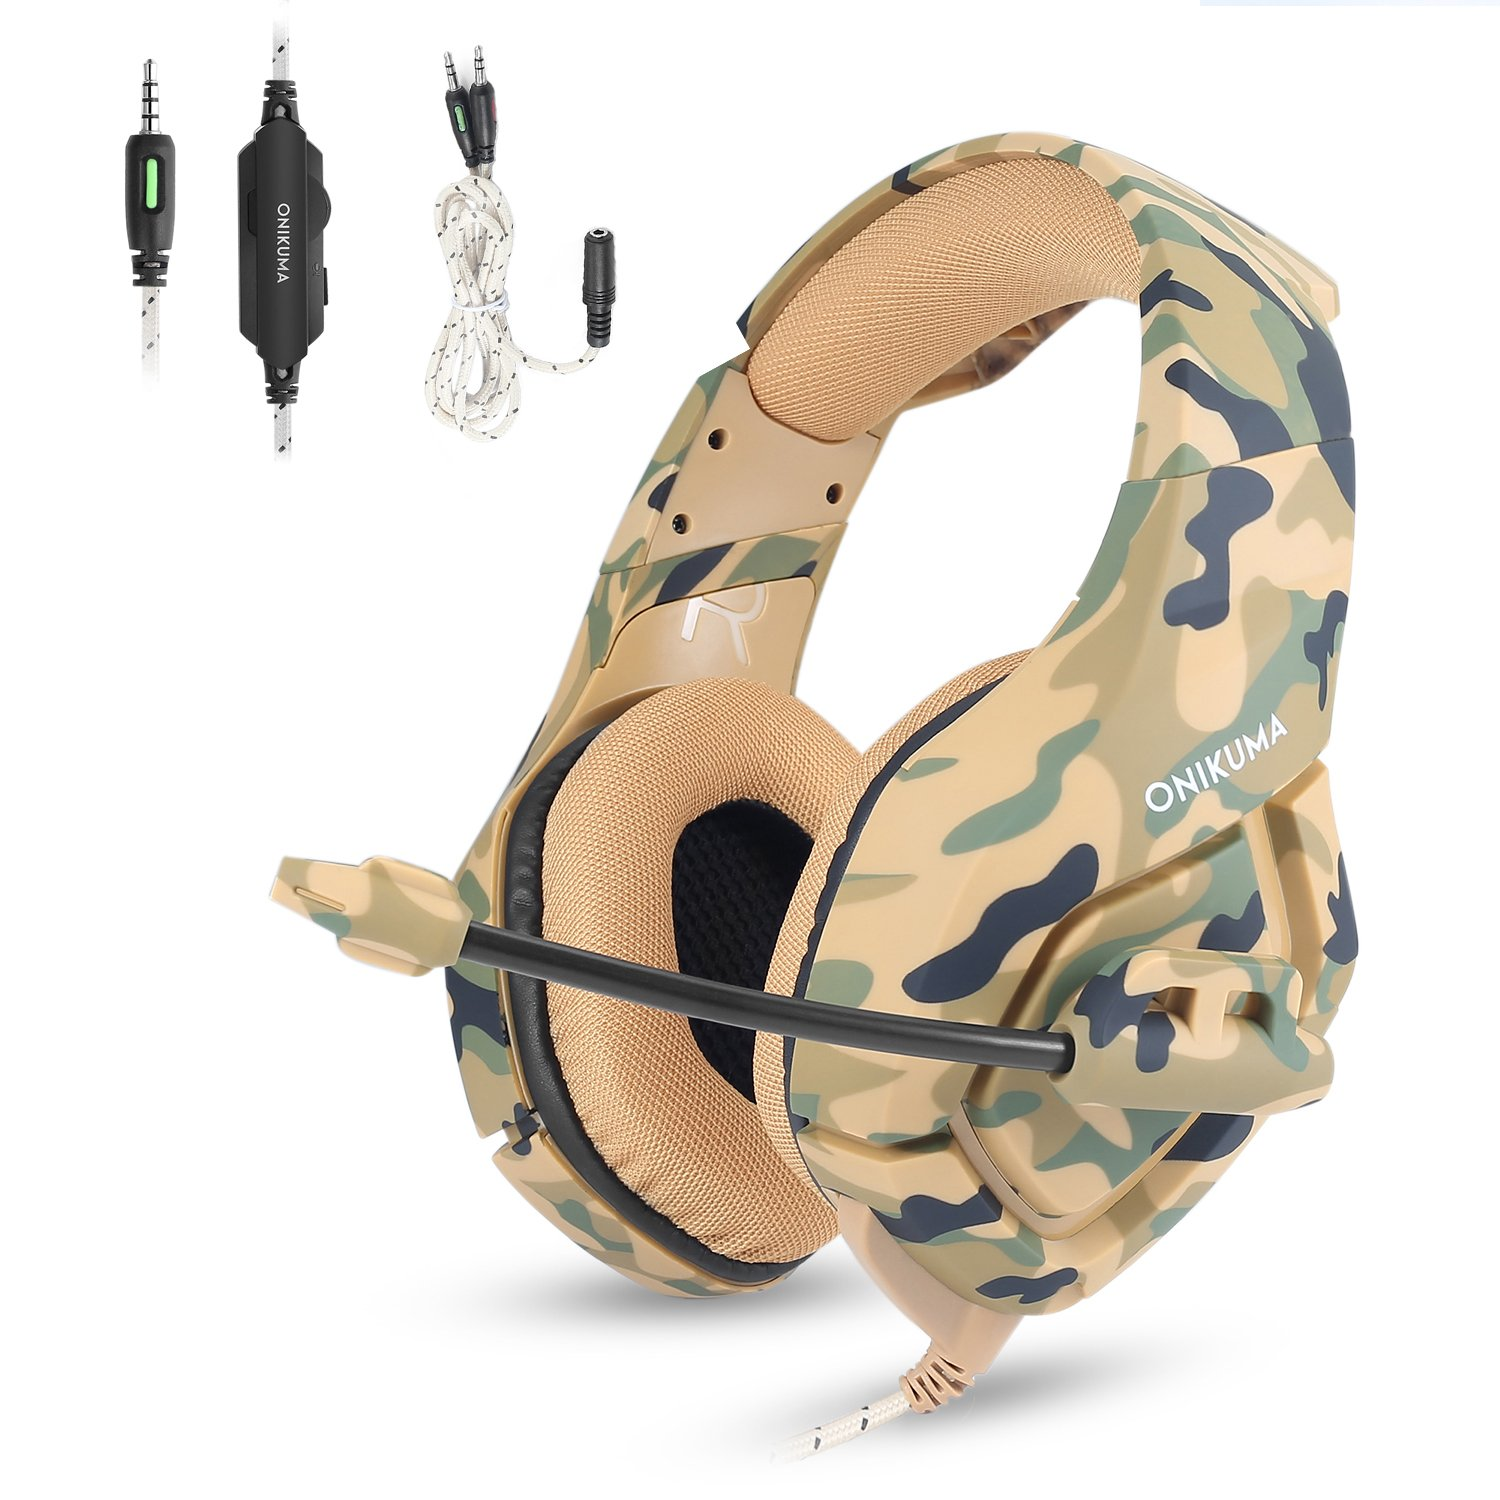 Gaming Headset for PS4 New Xbox one, Pisiar Stereo 3.5mm Over Ear Headphones with Mic and Noise Isolating, Bass Surround for Laptop PC Mac iPad and Smart Phones -Camouflage